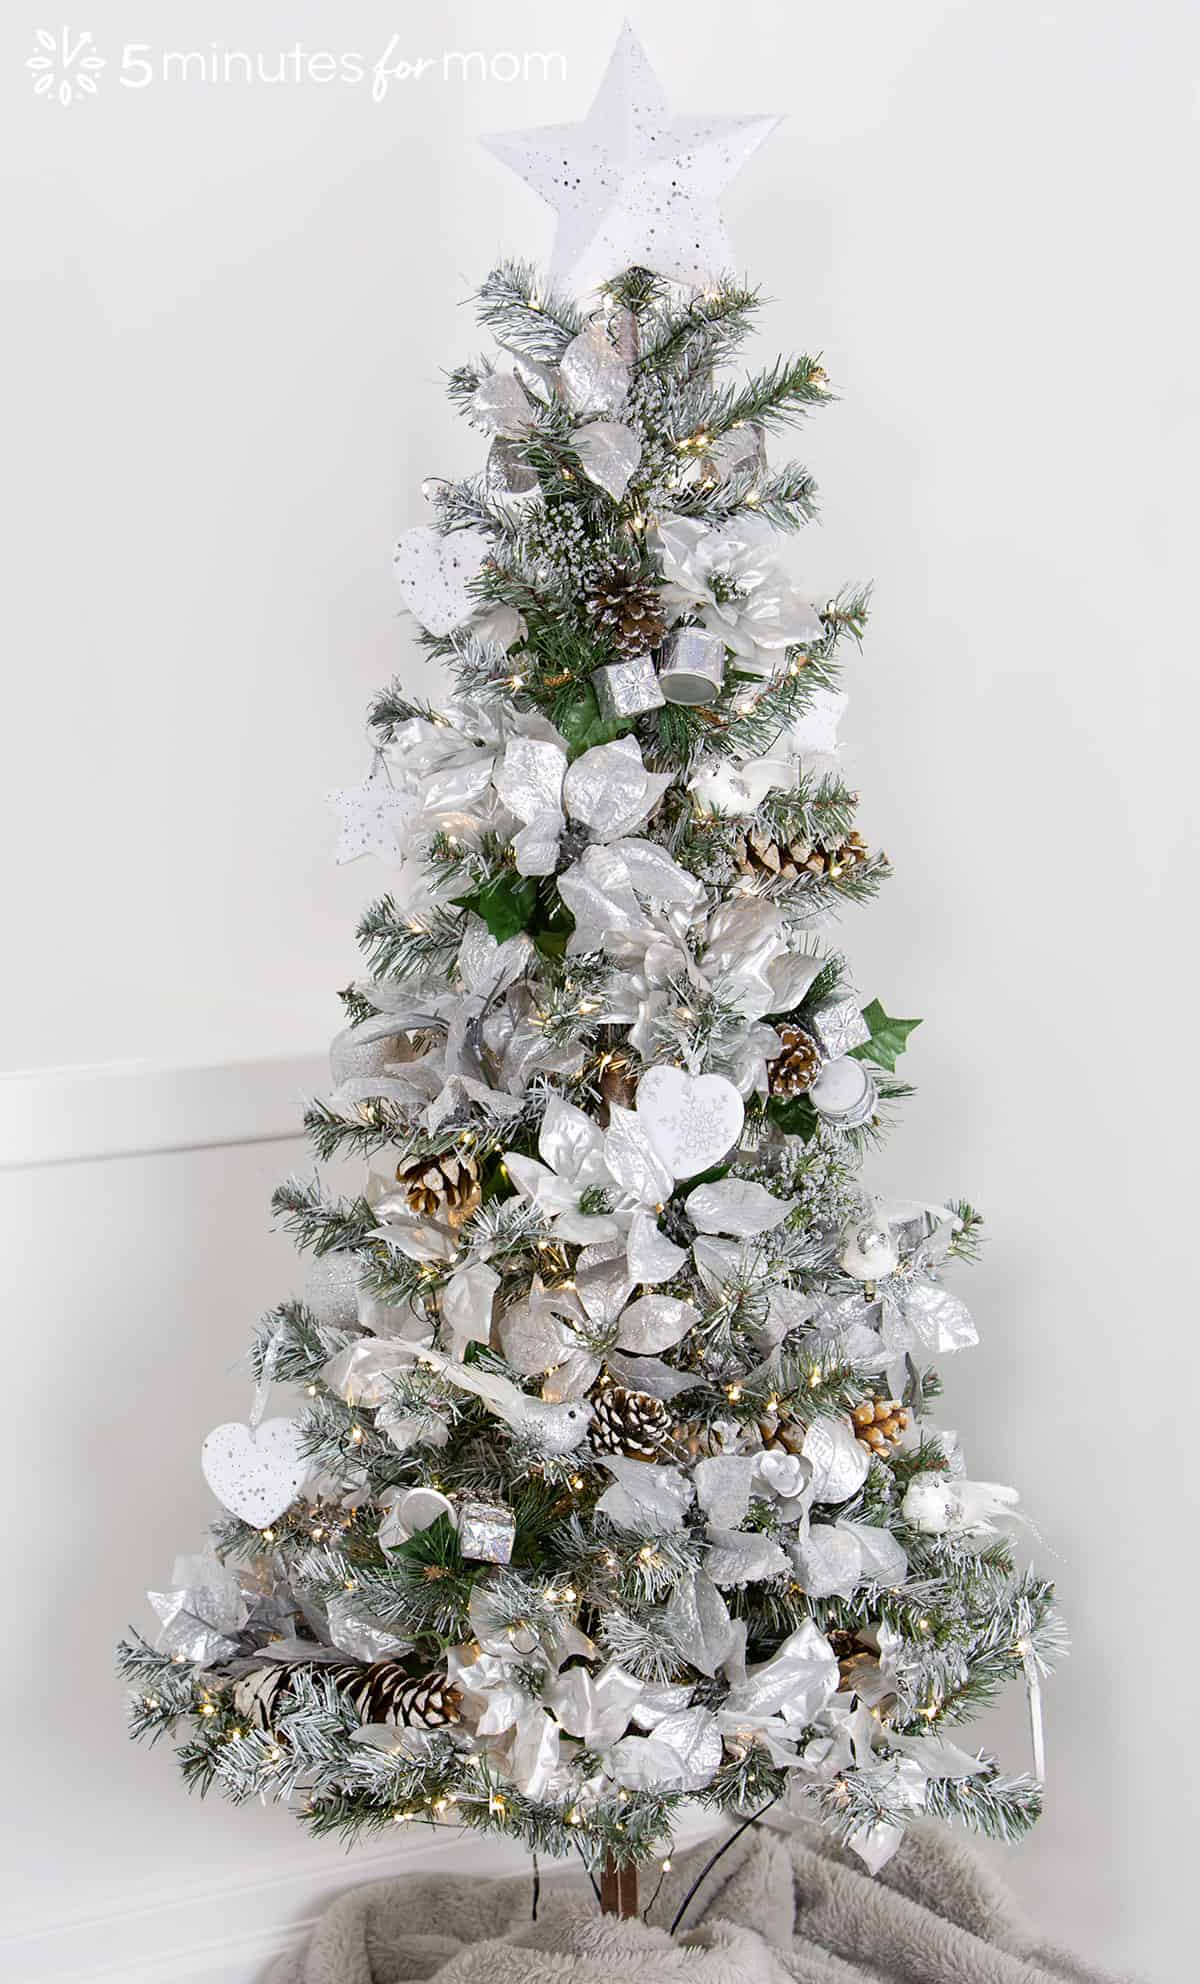 Spray Paint Christmas Tree - Silver and White Christmas Tree